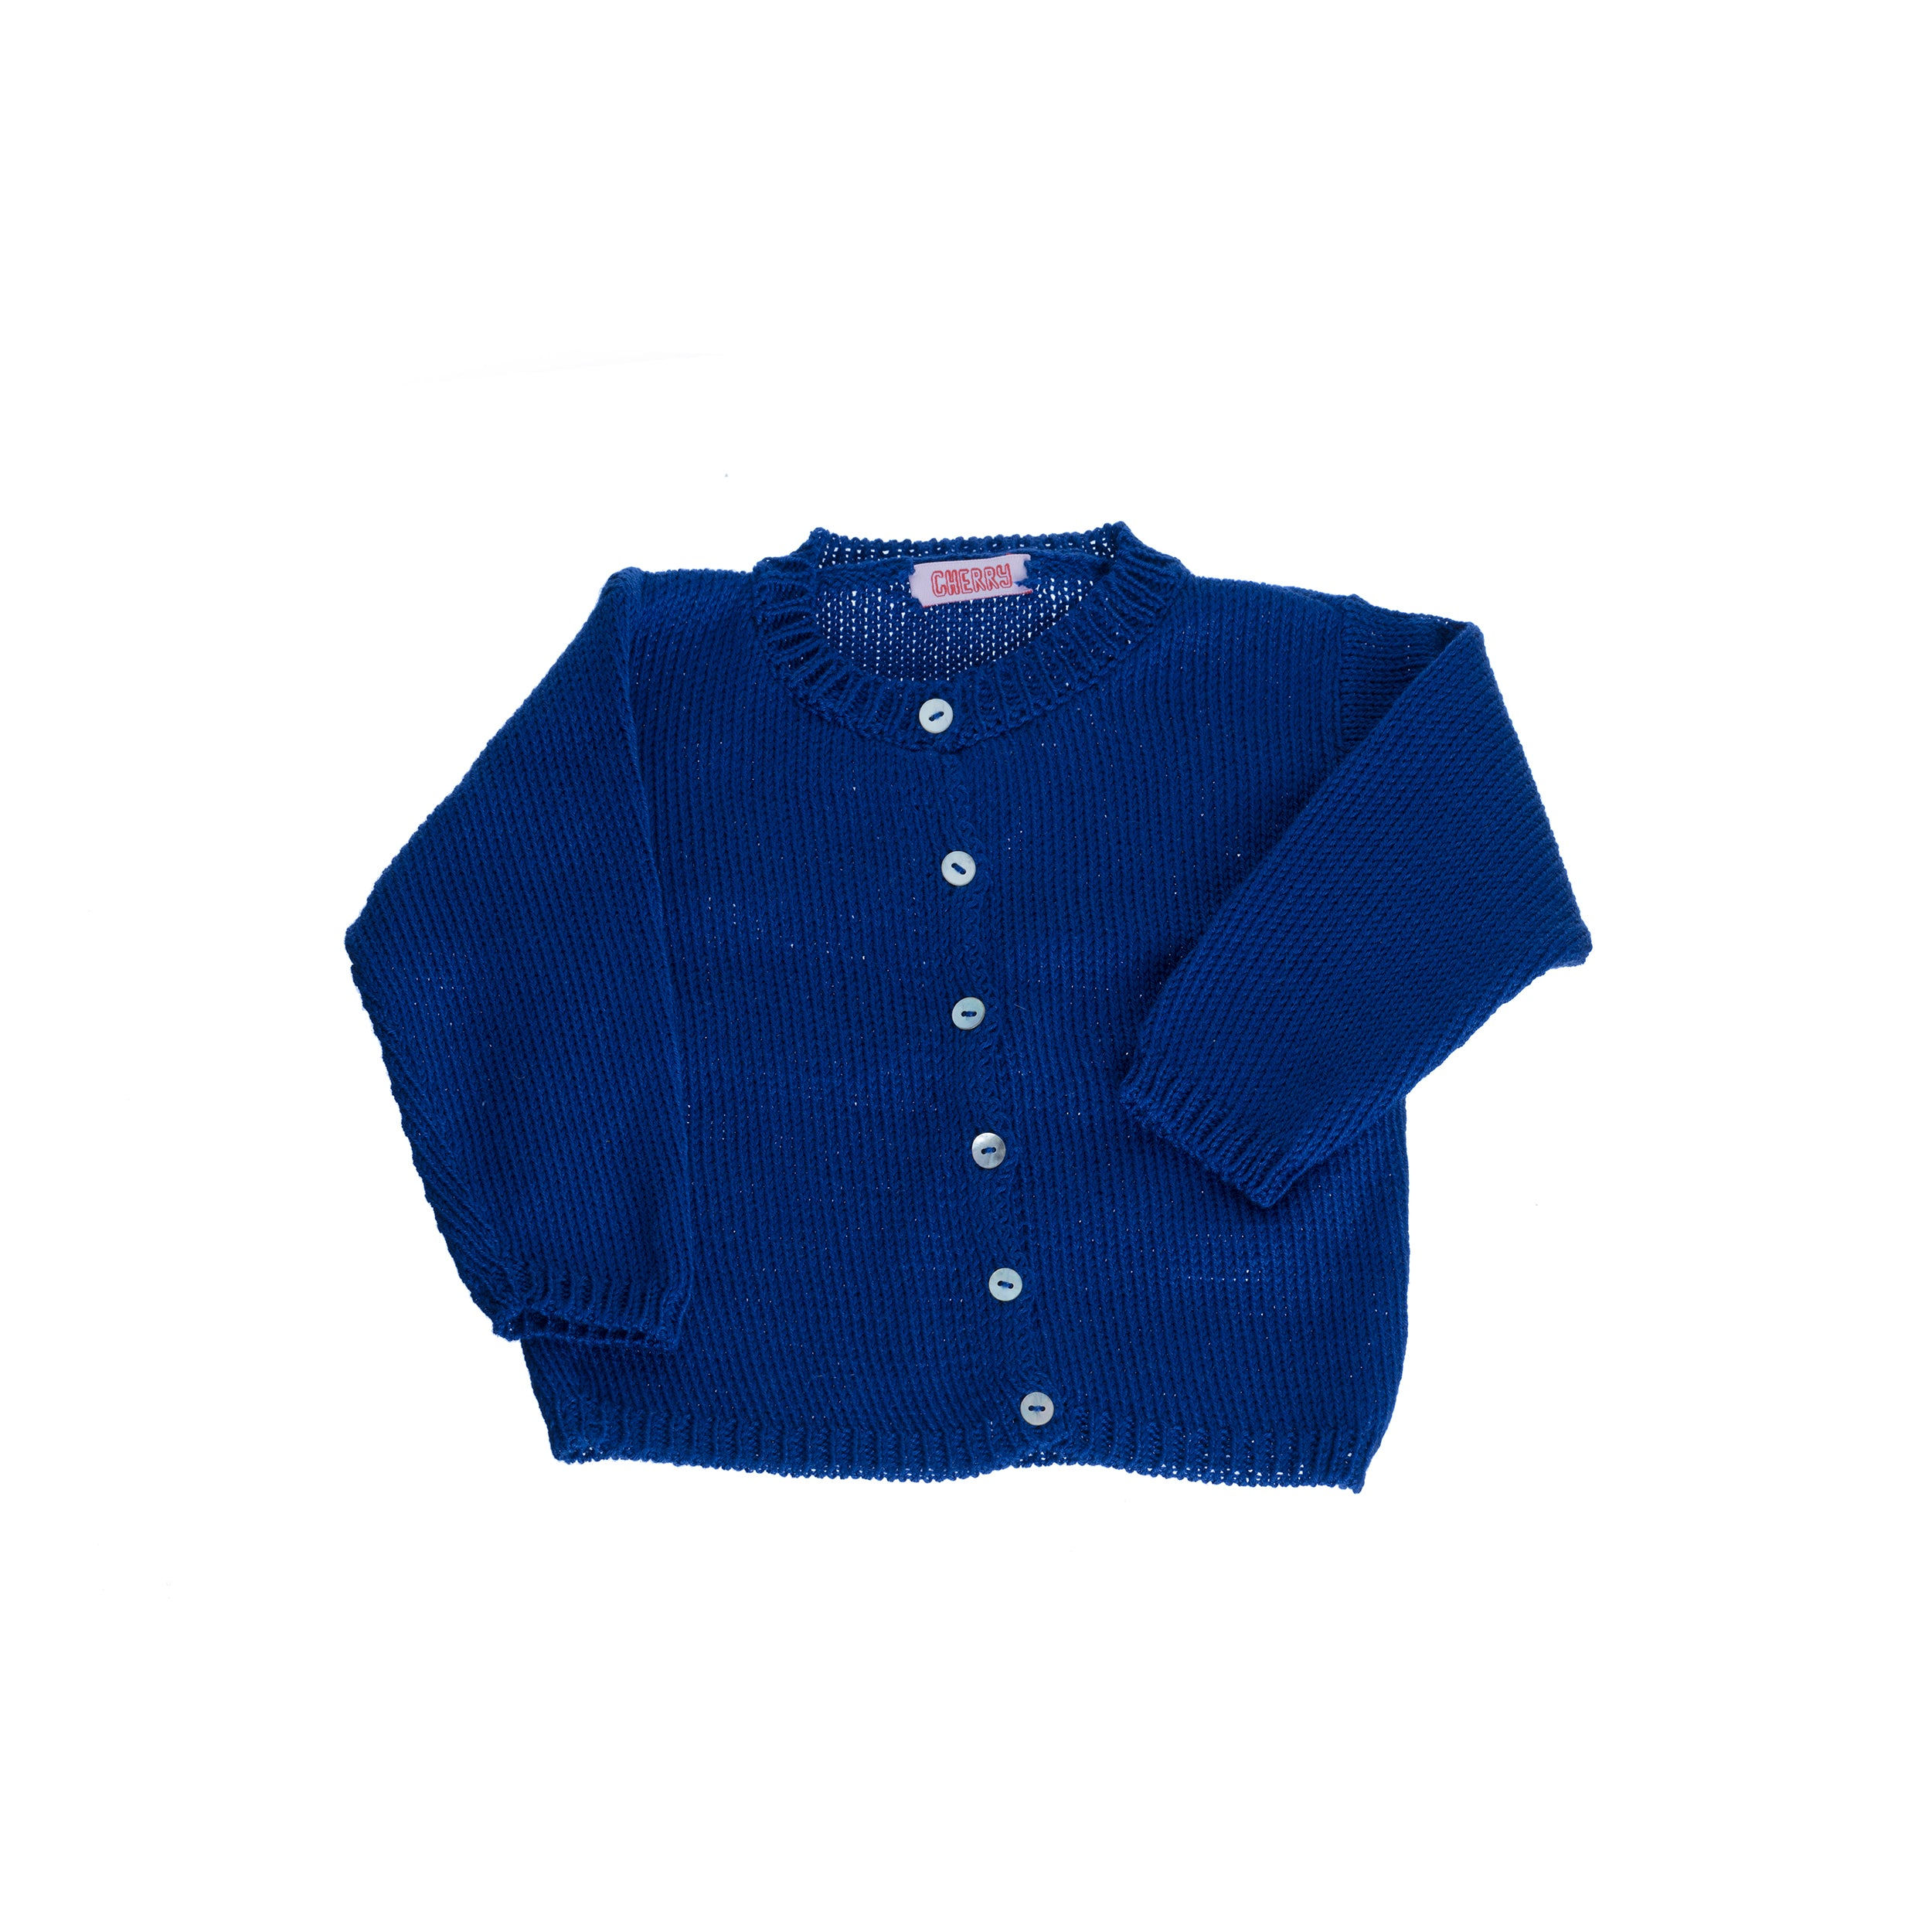 1757 Knit Jacket - Navy Blue